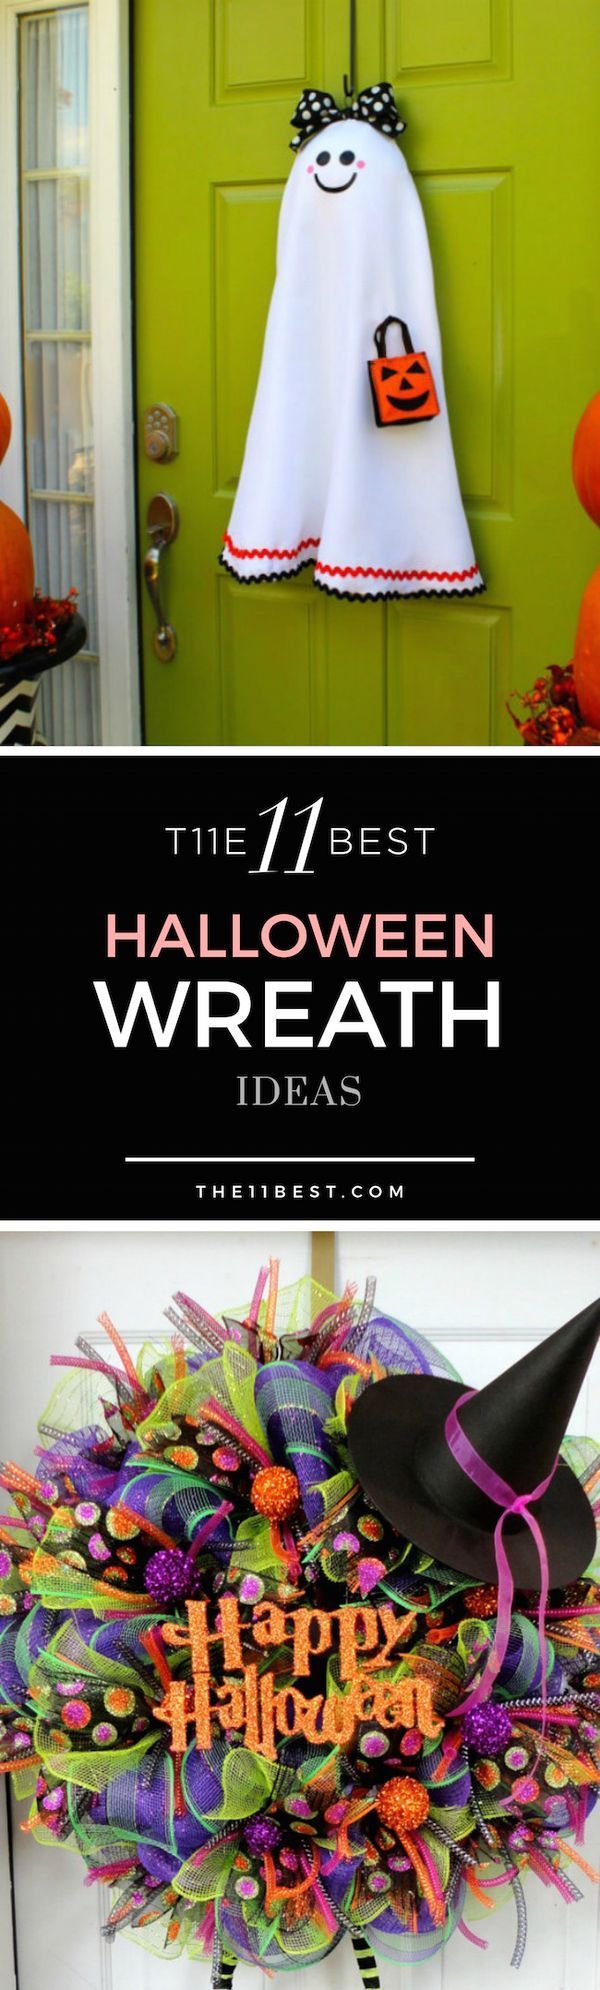 Halloween wreath ideas - love these DIY Crafts! Check out the tutorials, too!